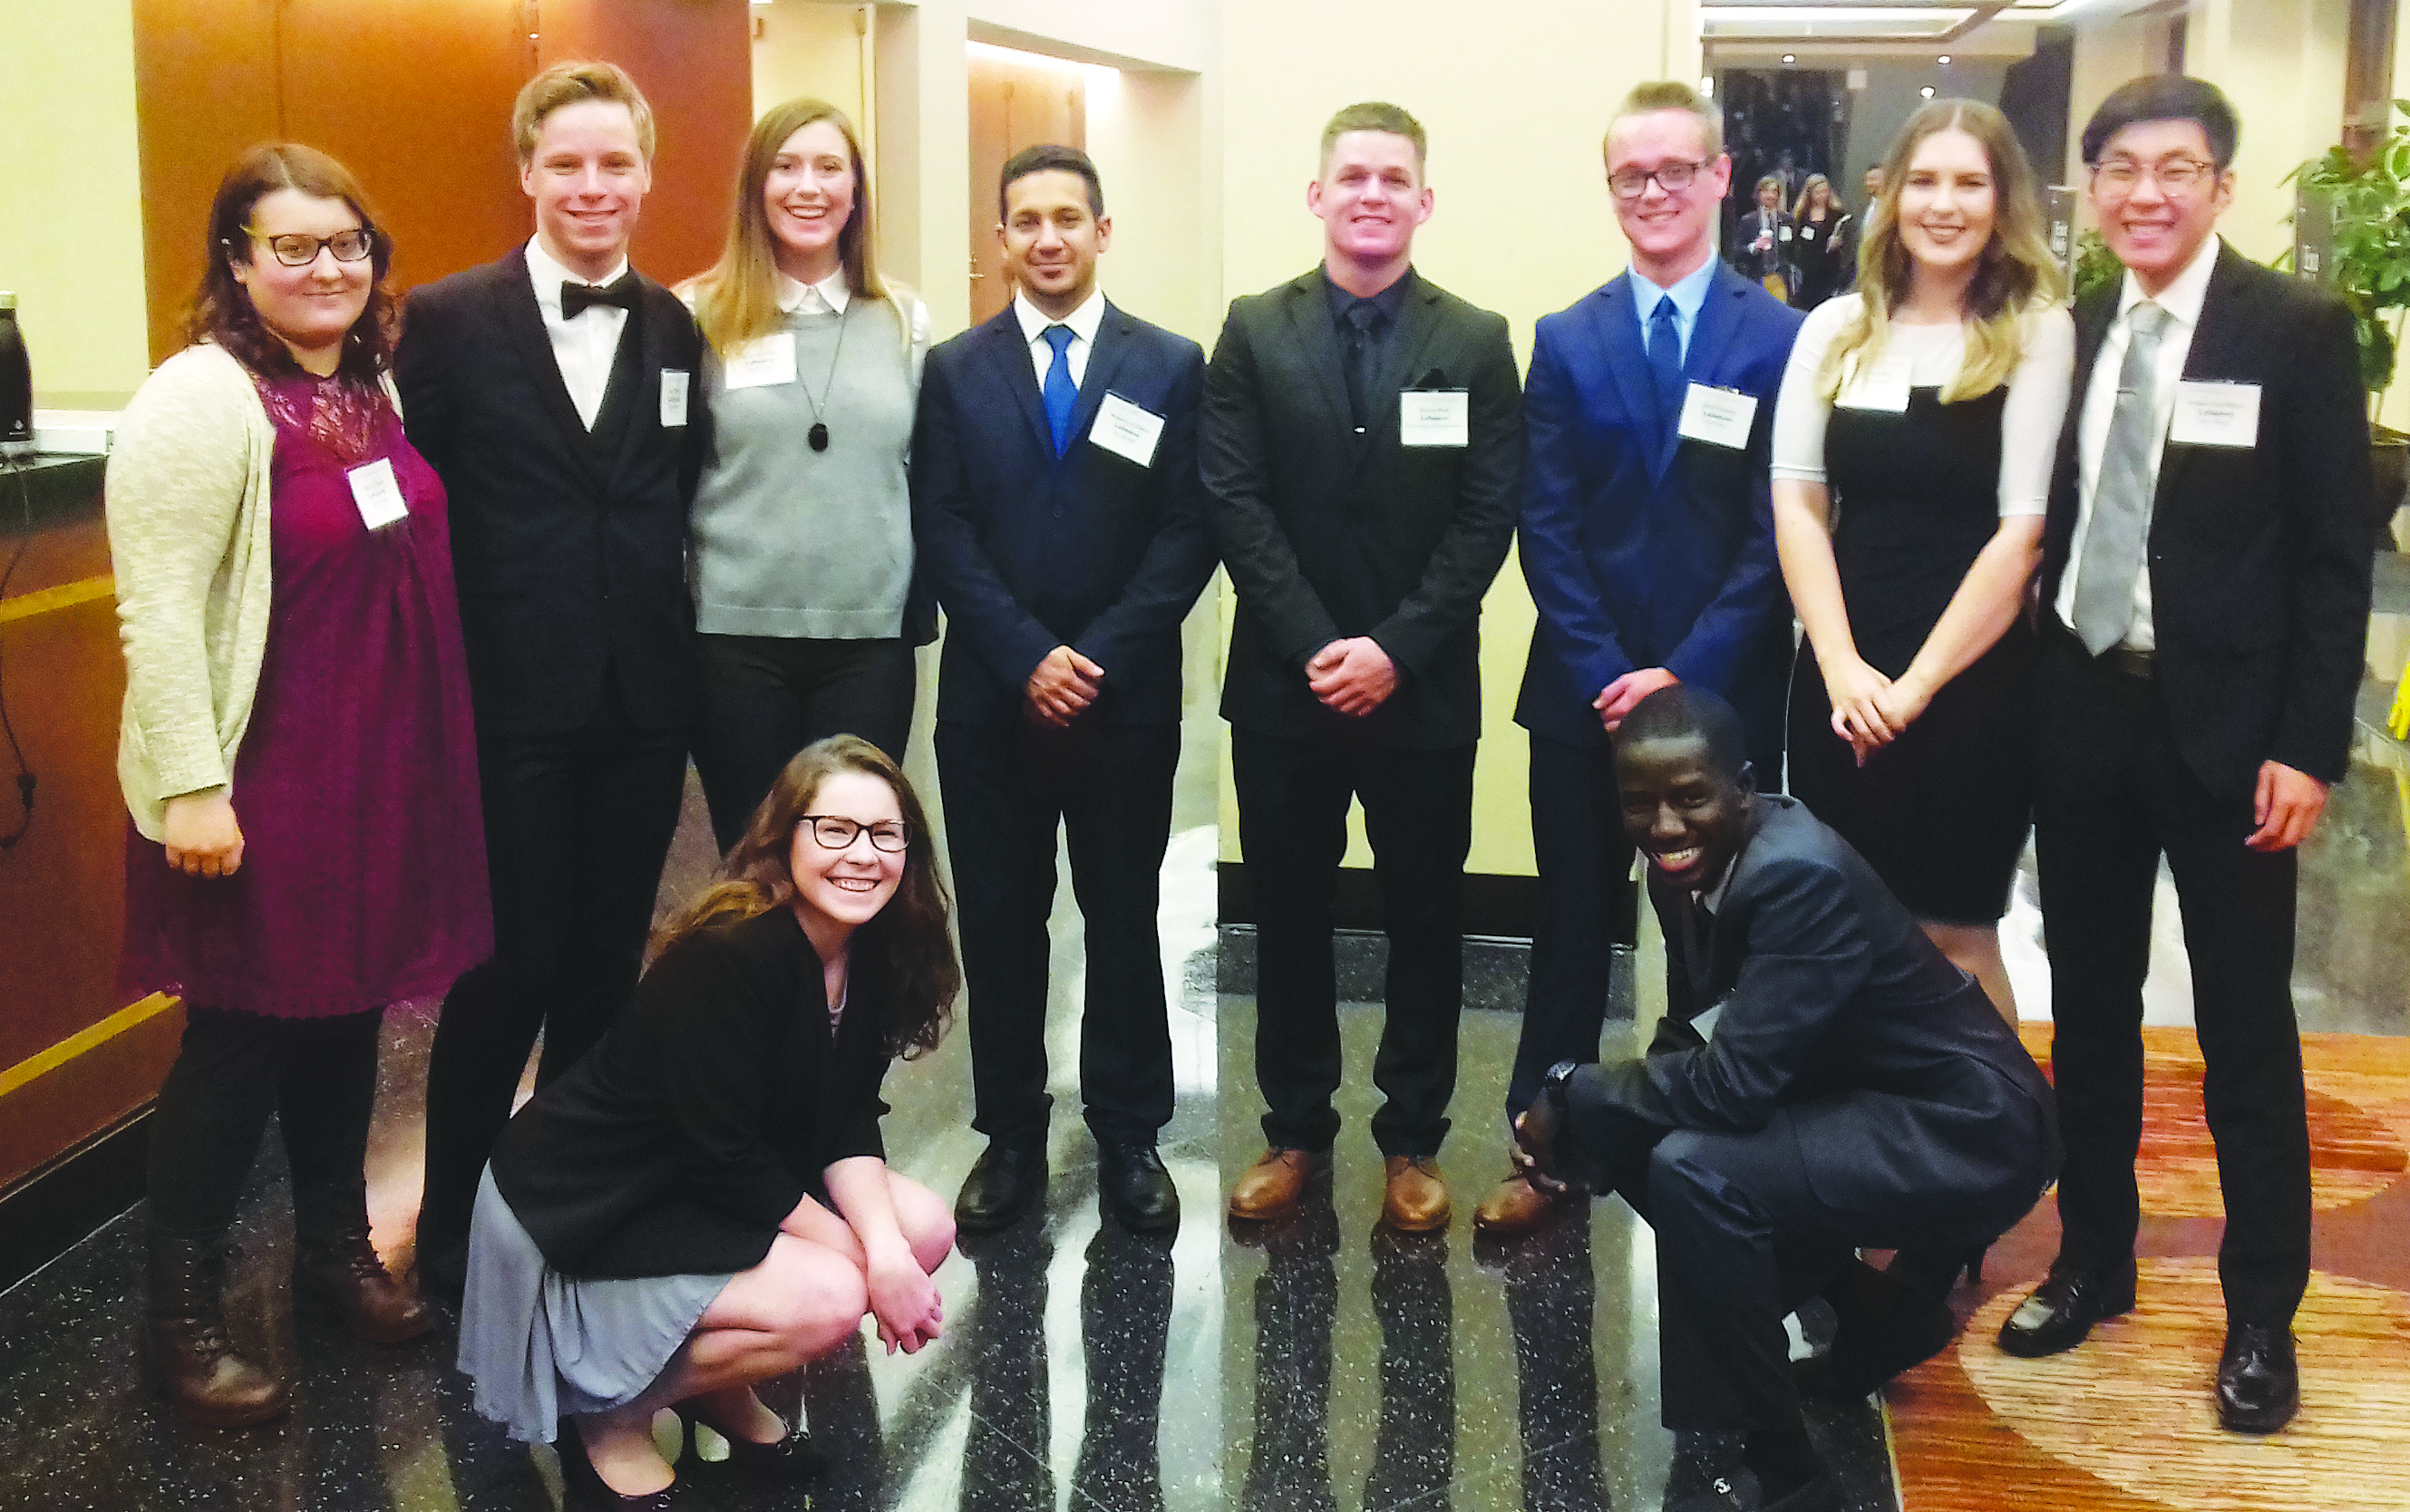 photos of students at Model UN Event in Chicago